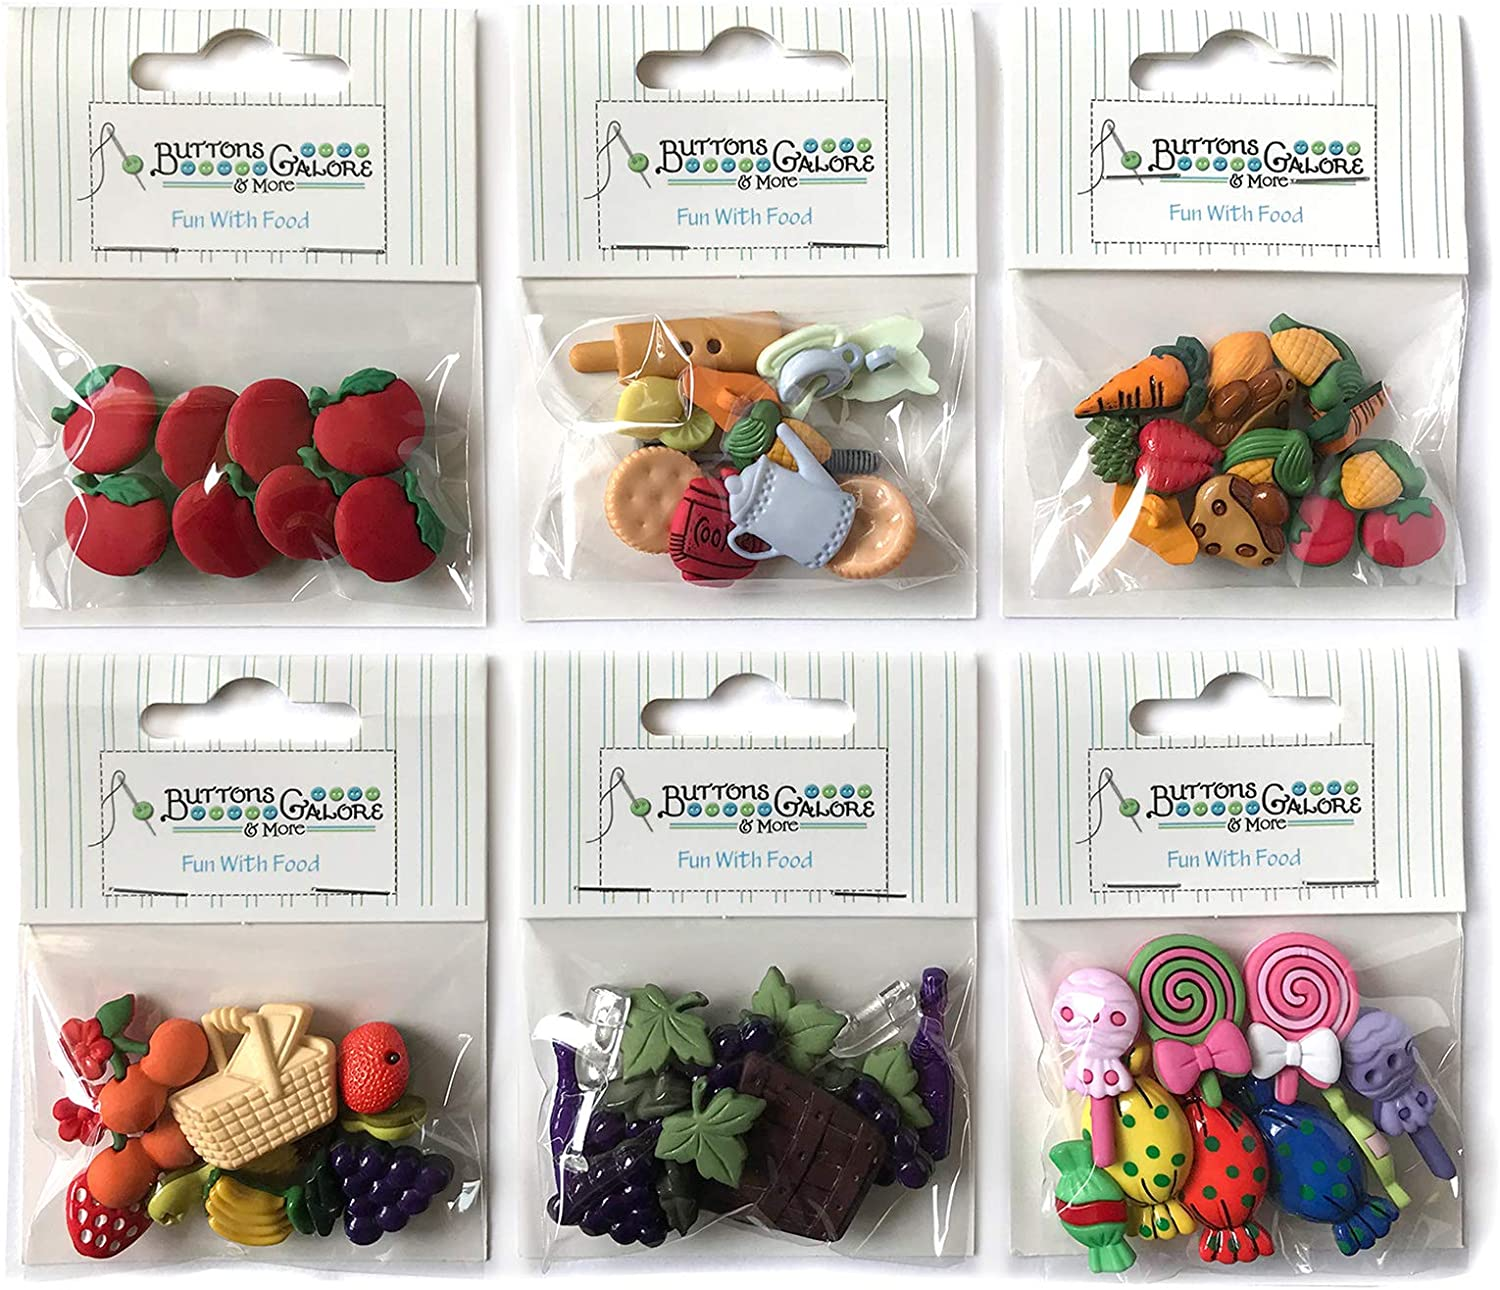 Buttons Galore 50+ Assorted Food Buttons for Sewing & Crafts - Set of 6 Button Packs